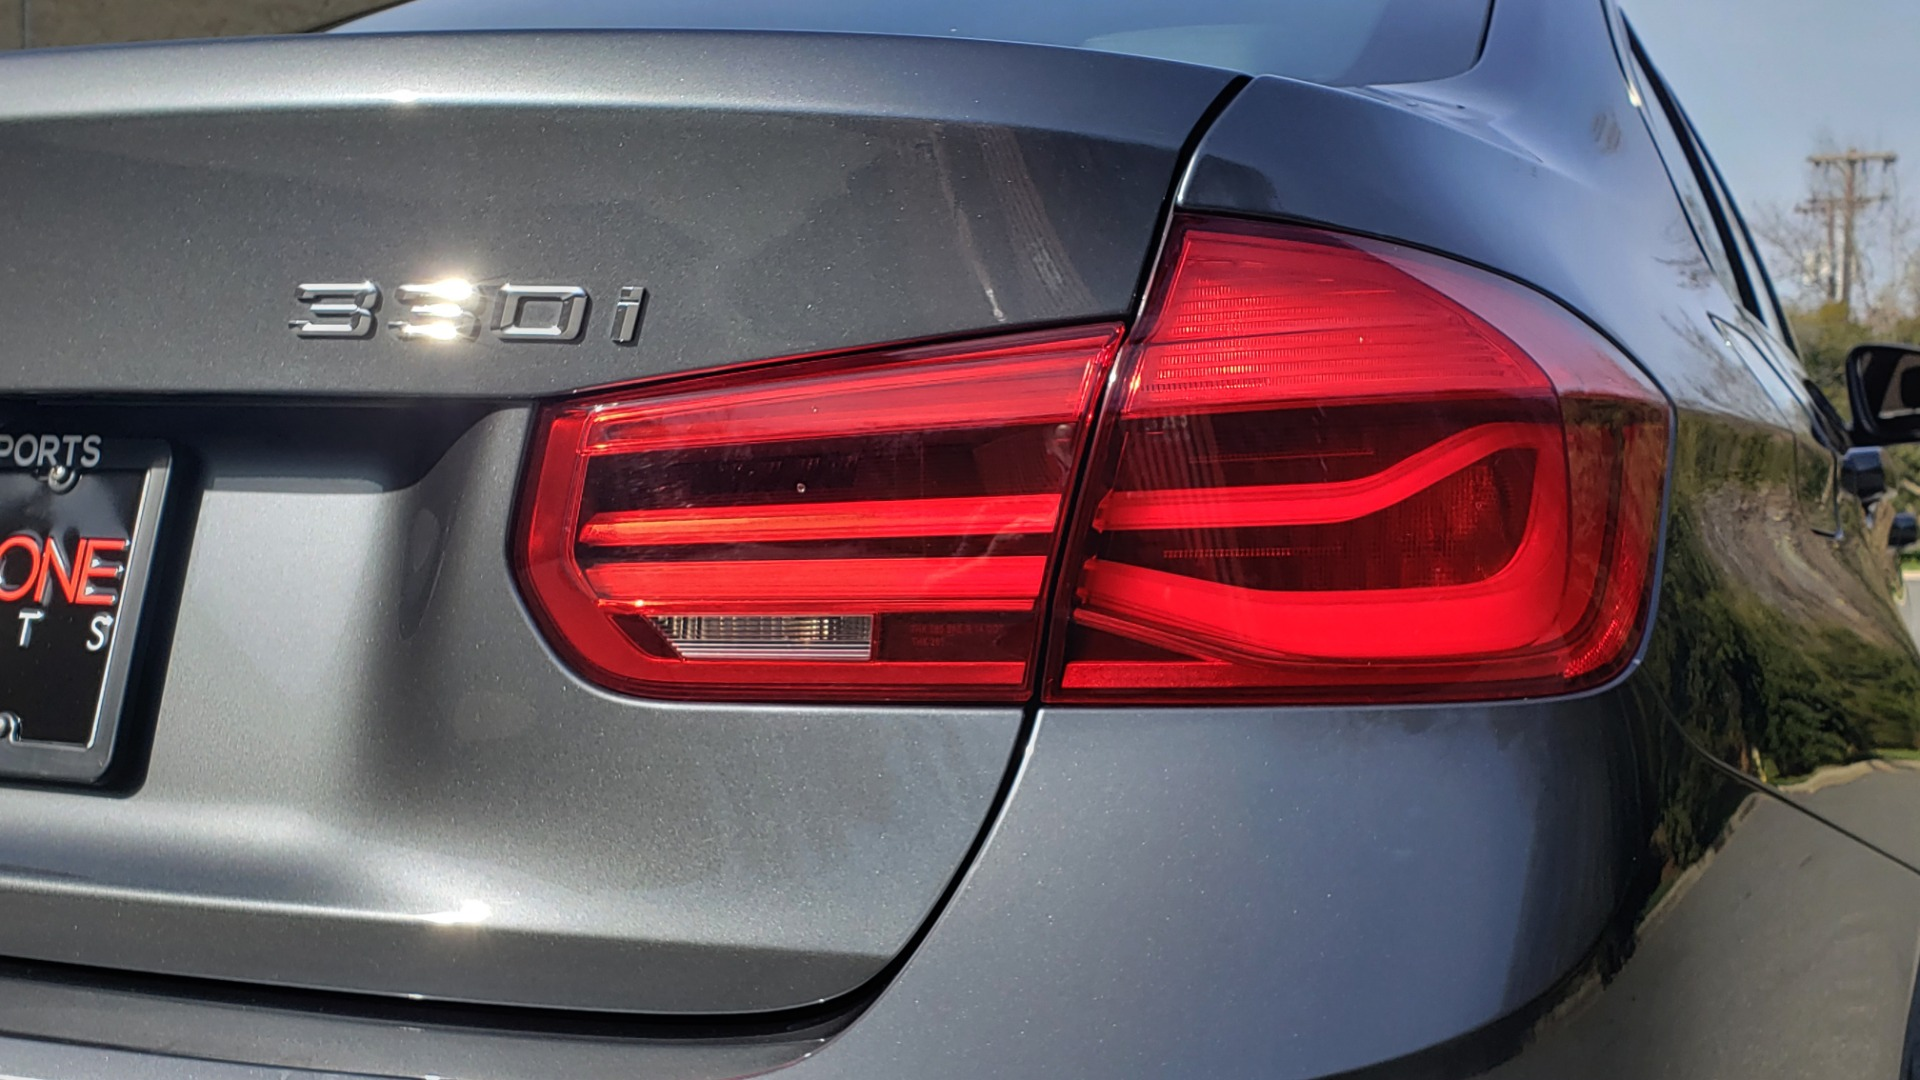 Used 2017 BMW 3 SERIES 330I PREMIUM / DRVR ASST / NAV / SUNROOF / HTD STS / REARVIEW for sale Sold at Formula Imports in Charlotte NC 28227 30